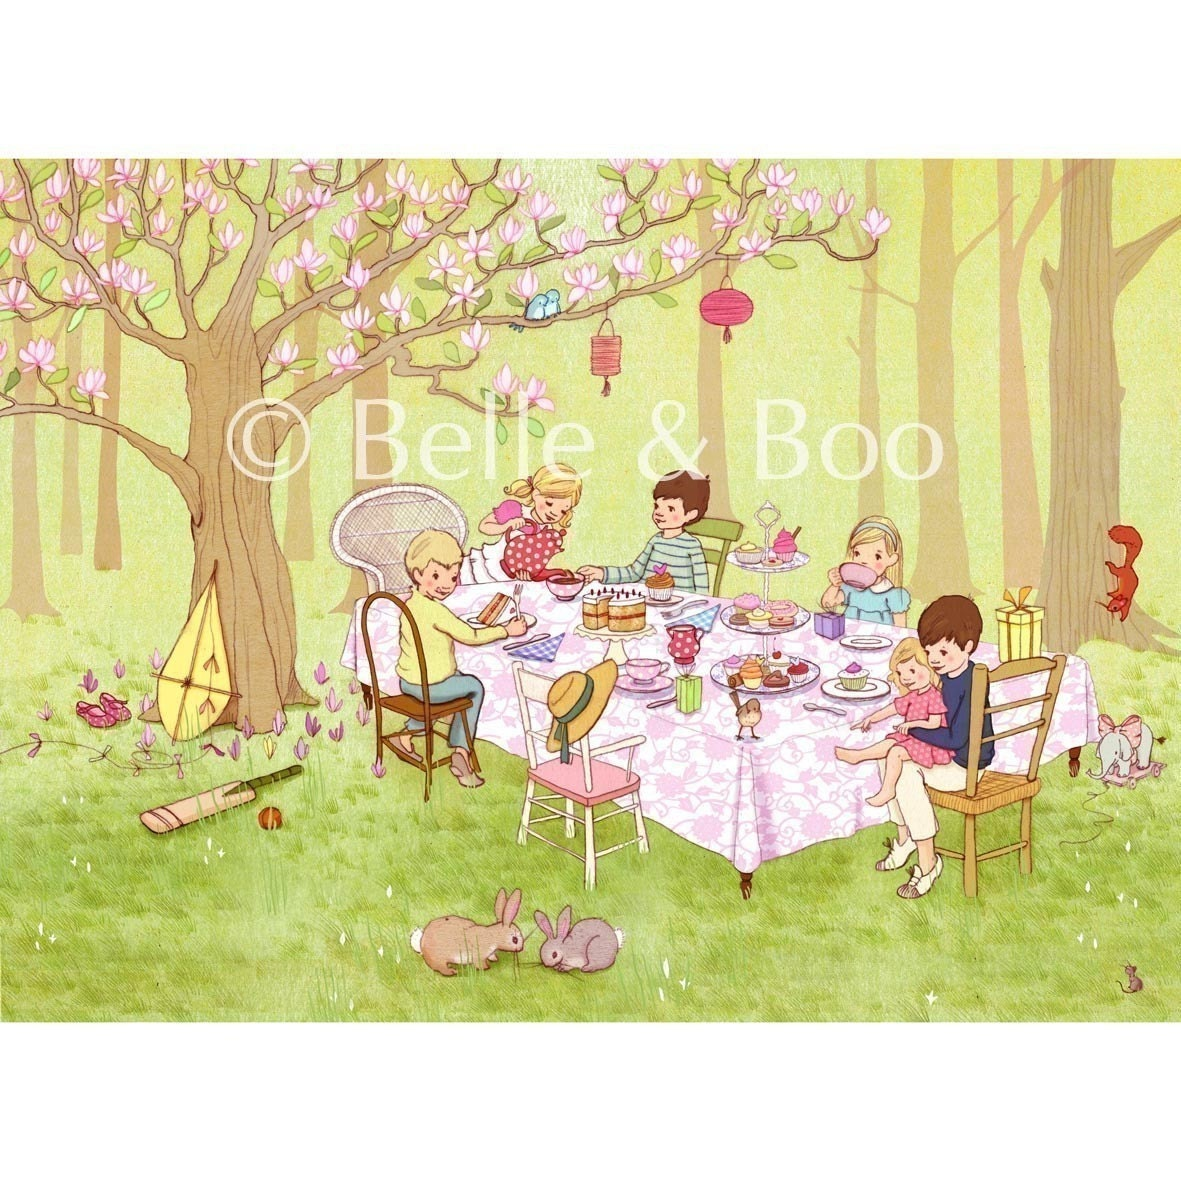 Ava's Tea Party Fine Art Print